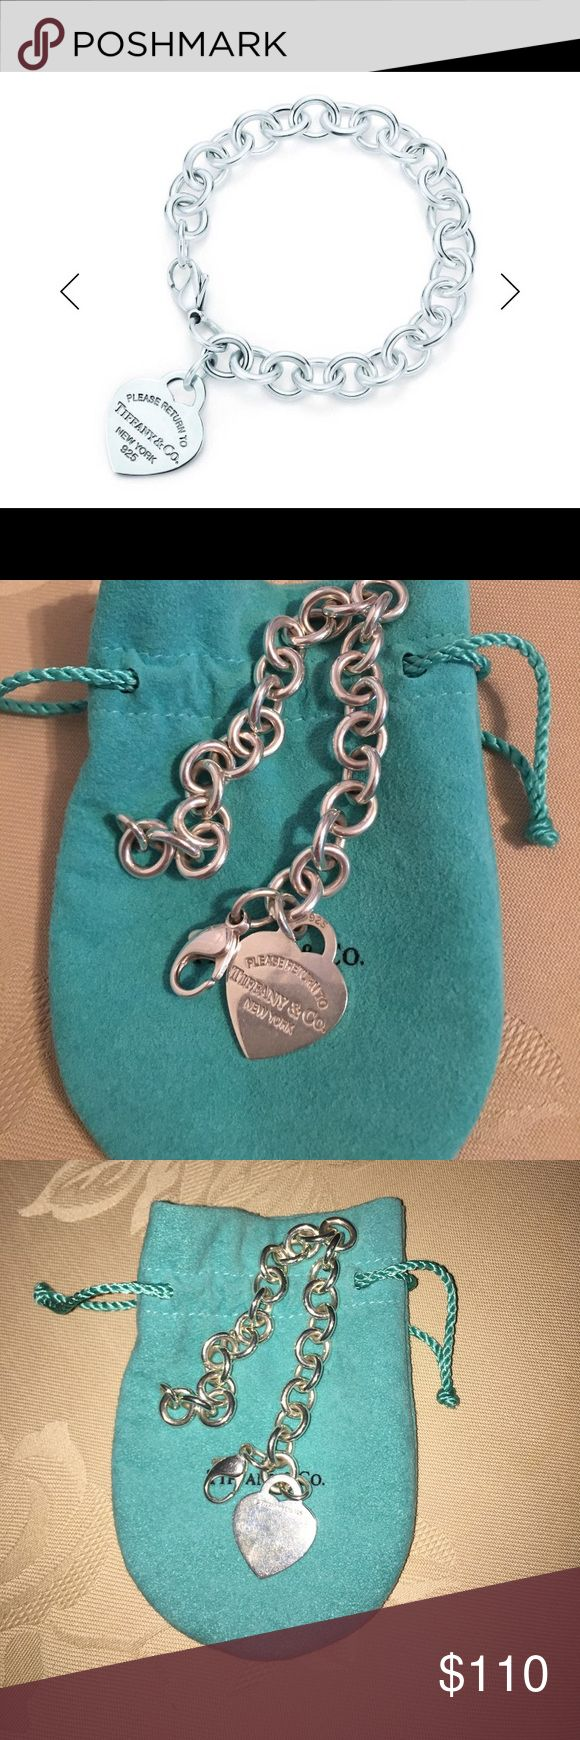 Return to Tiffany & Co. Heart Charm Bracelet AUTHENTIC. Return to Tiffany & Co. bracelet. A few scratches from being worn about 4 times, but nothing noticeable. Comes with authentic box and pouch! Please feel free to ask questions!! Tiffany & Co. Jewelry Bracelets